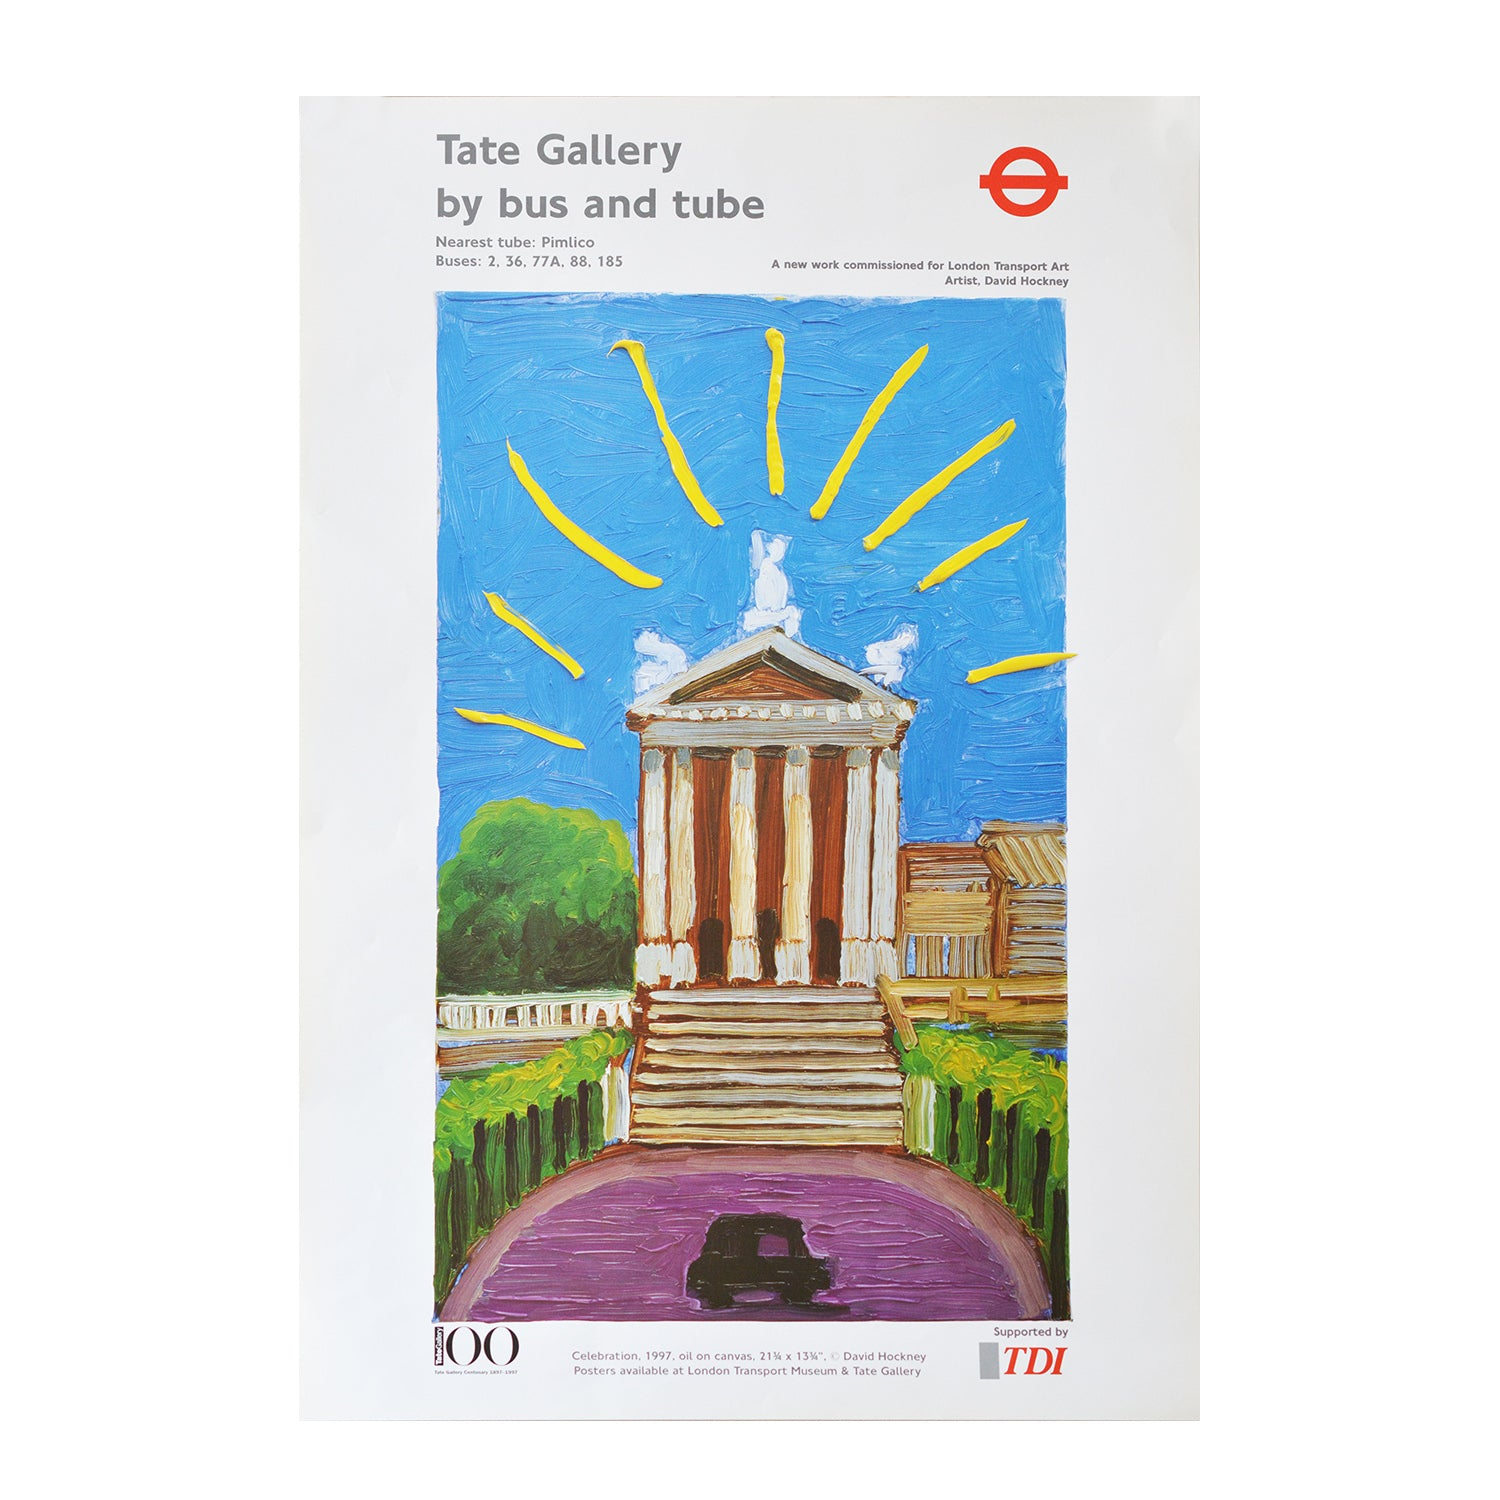 Original David Hockney London Transport poster